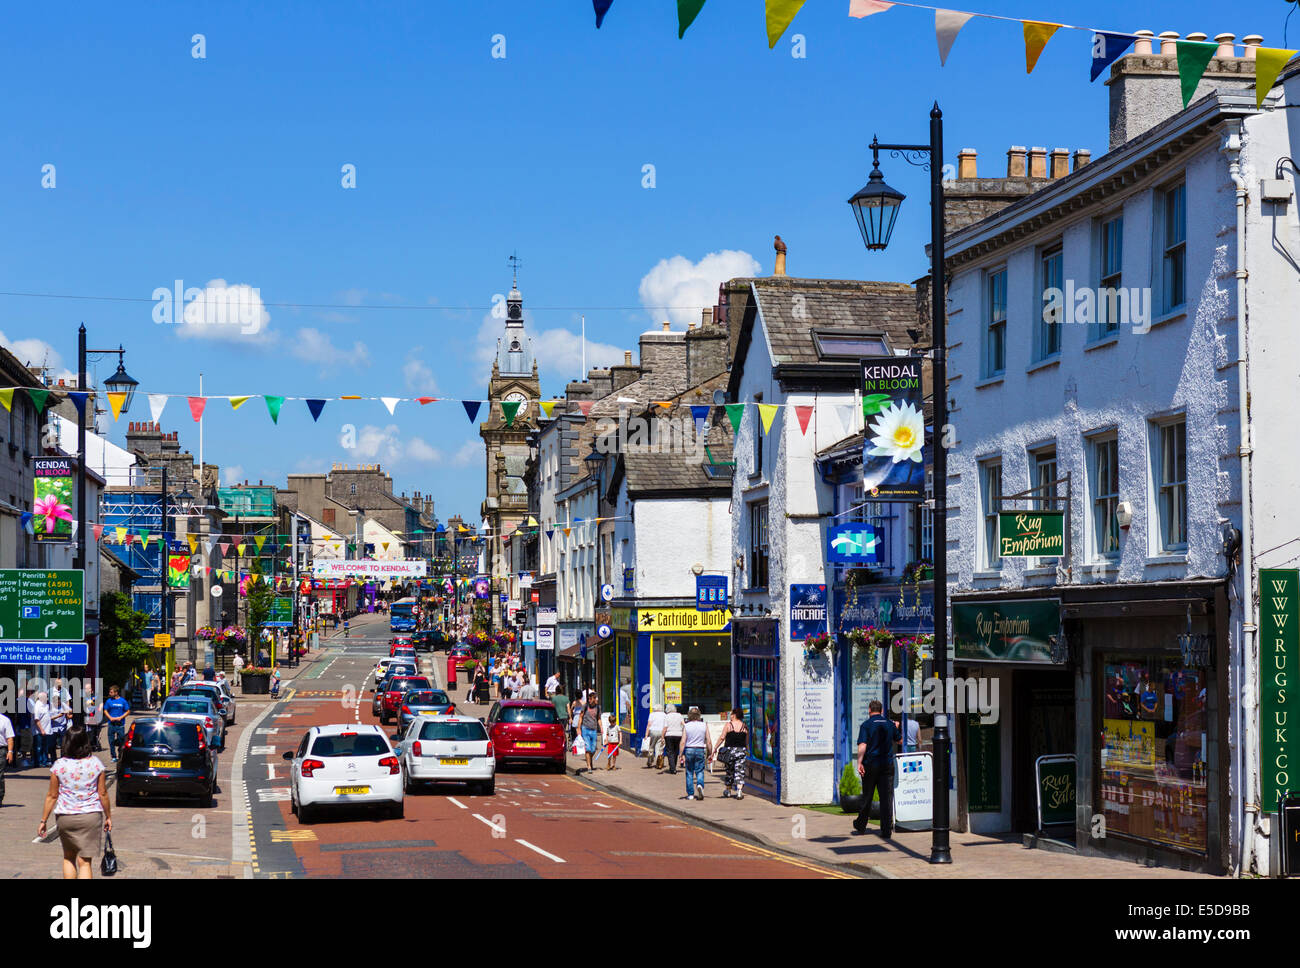 Highgate in the centre of Kendal, Lake District, Cumbria, UK - Stock Image